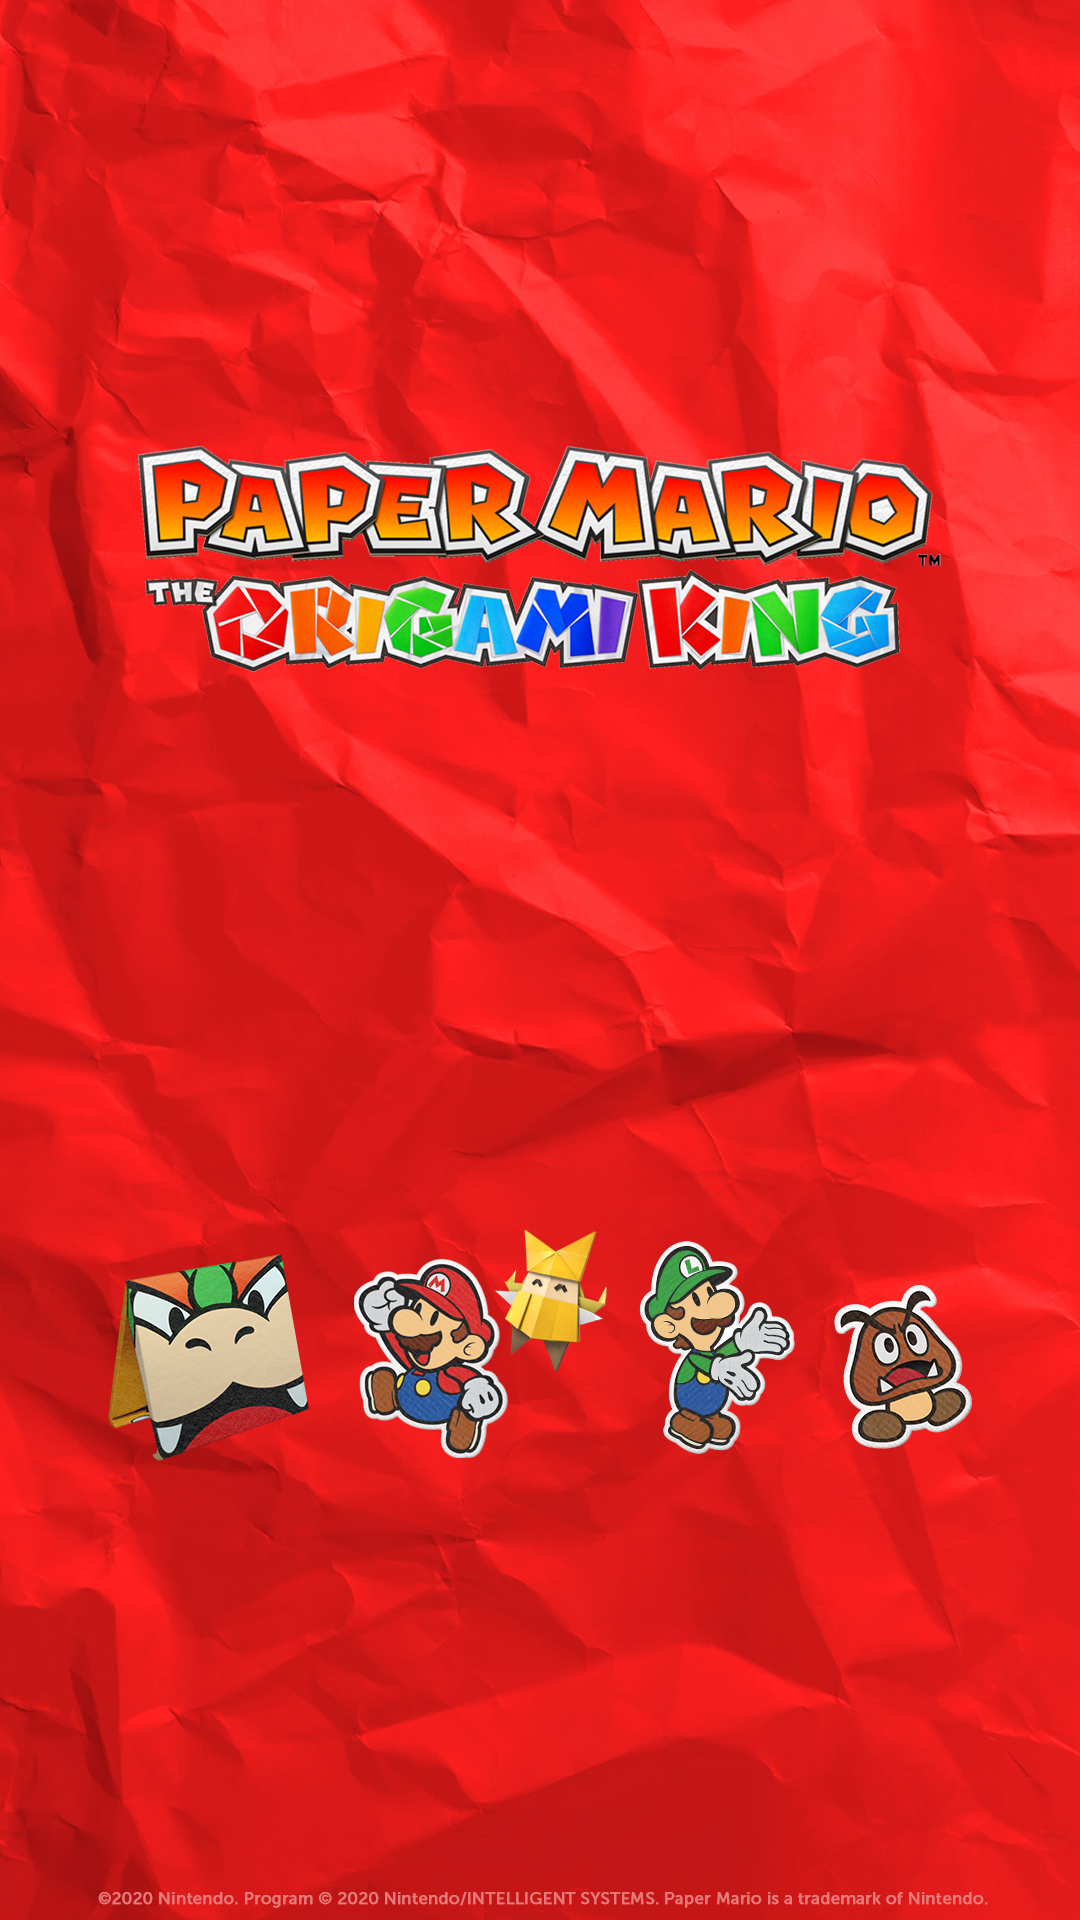 paper-mario™_-the-origami-king-wallpaper.png